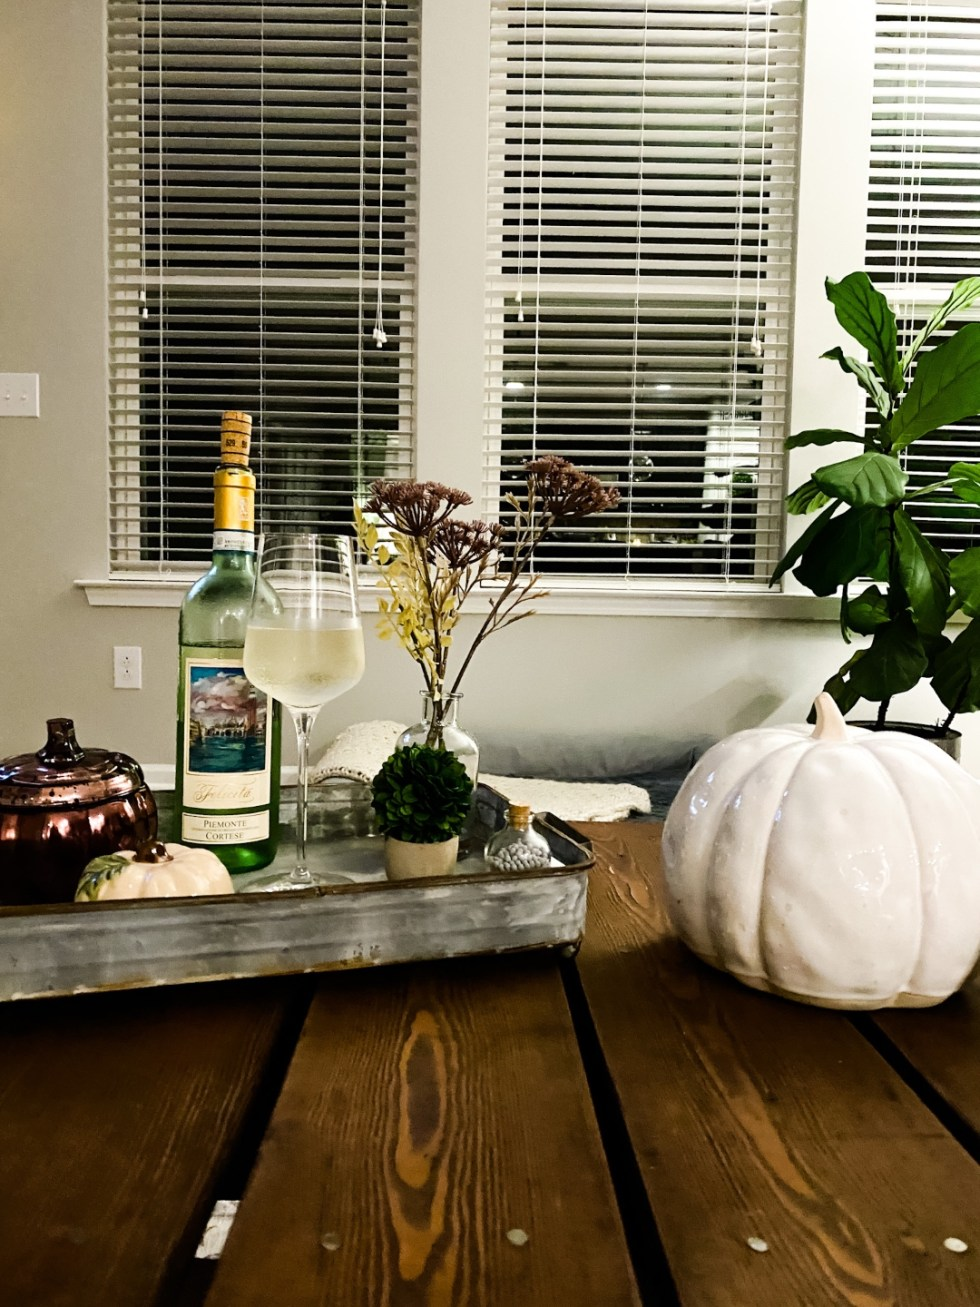 Target Fall Home Decor by popular N.C. life and style blog, I'm Fixin' To: image of a table set with a white ceramic pumpkin, metal serving tray, bottle of white wine, wine glass filled with white wine, and some ceramic pumpkins.